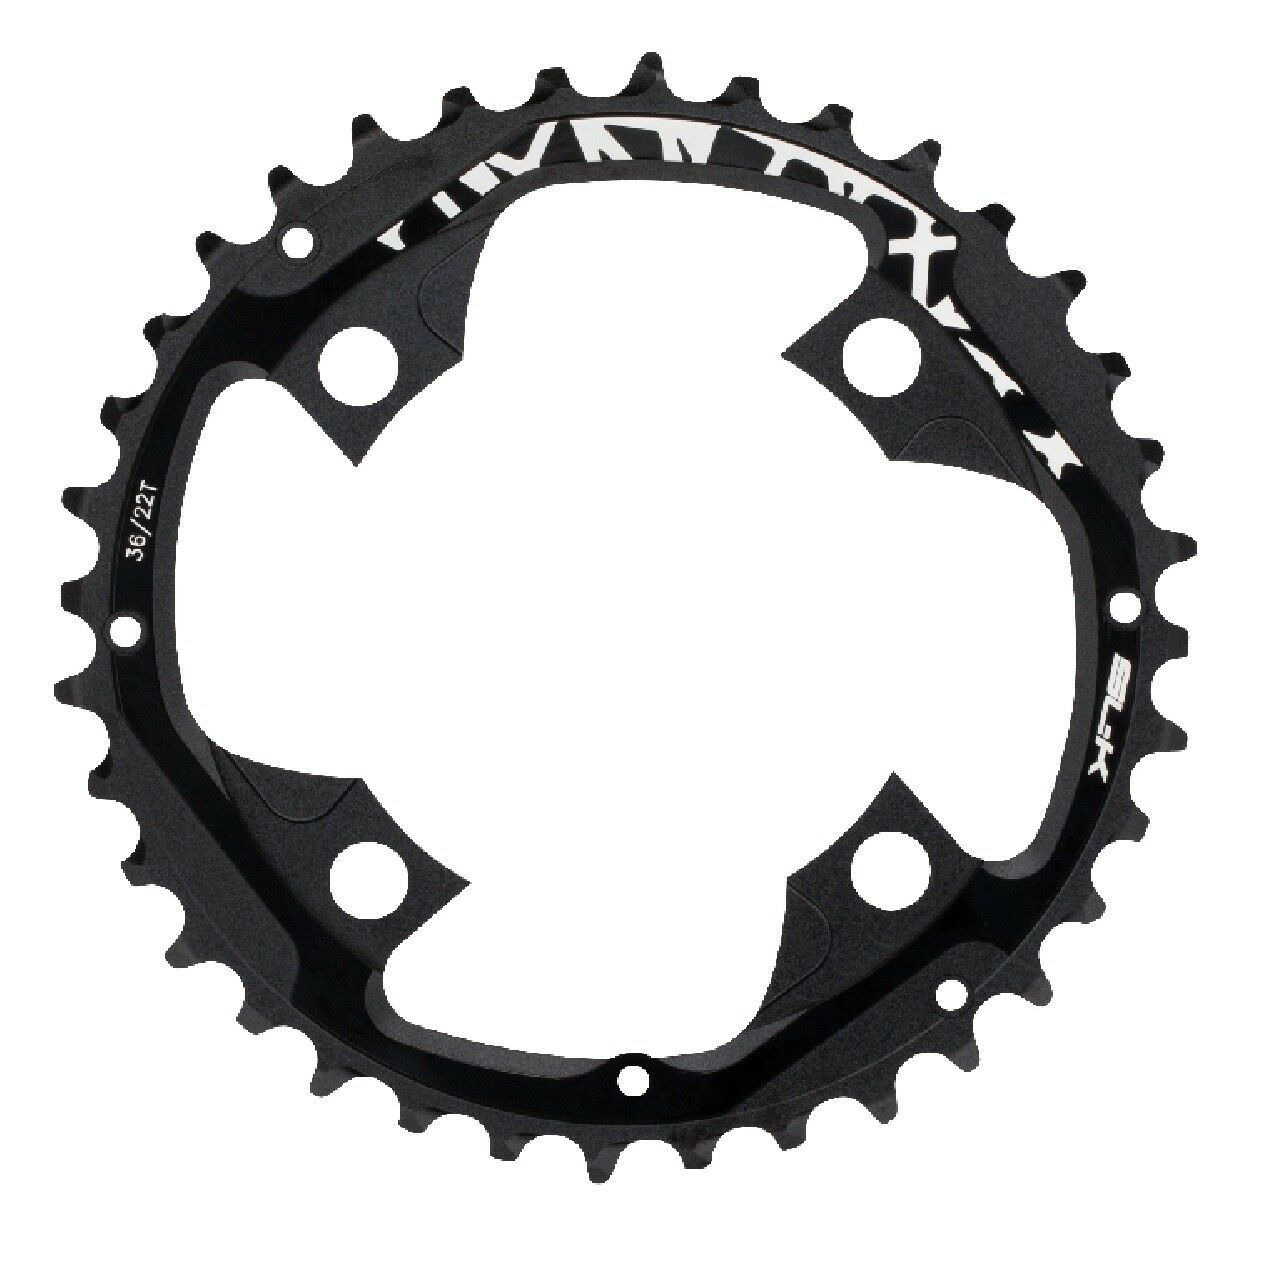 FSA SL-K ABS Super Type MTB Chainring 36t 96 BCD